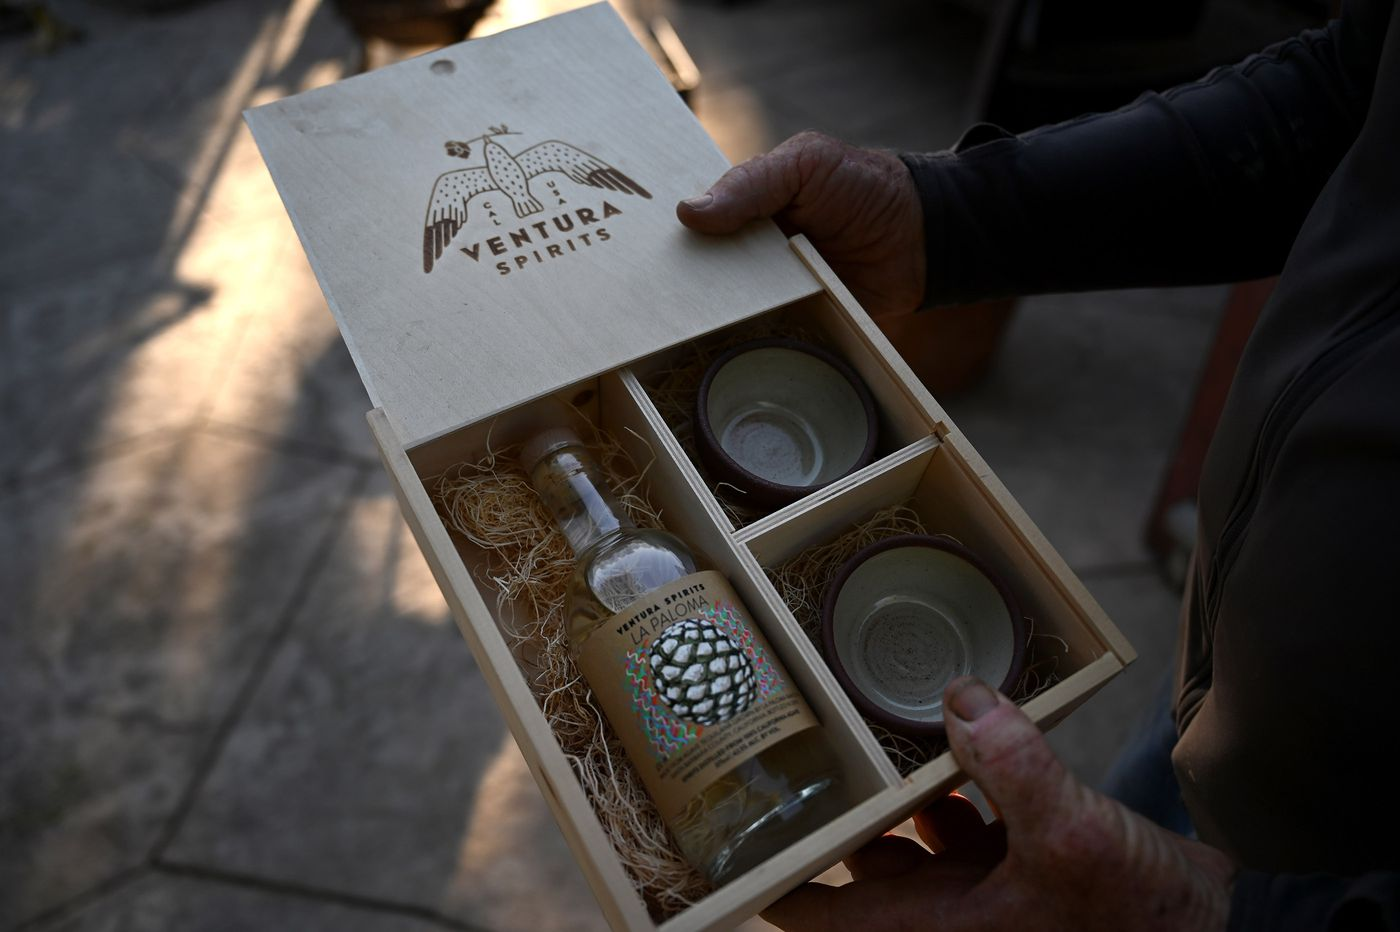 A small Ventura distillery has started selling liquor made from La Paloma's agave, the latest craft offering added to southern California's homegrown wine and beer. Washington Post photo by Michael Robinson Chavez